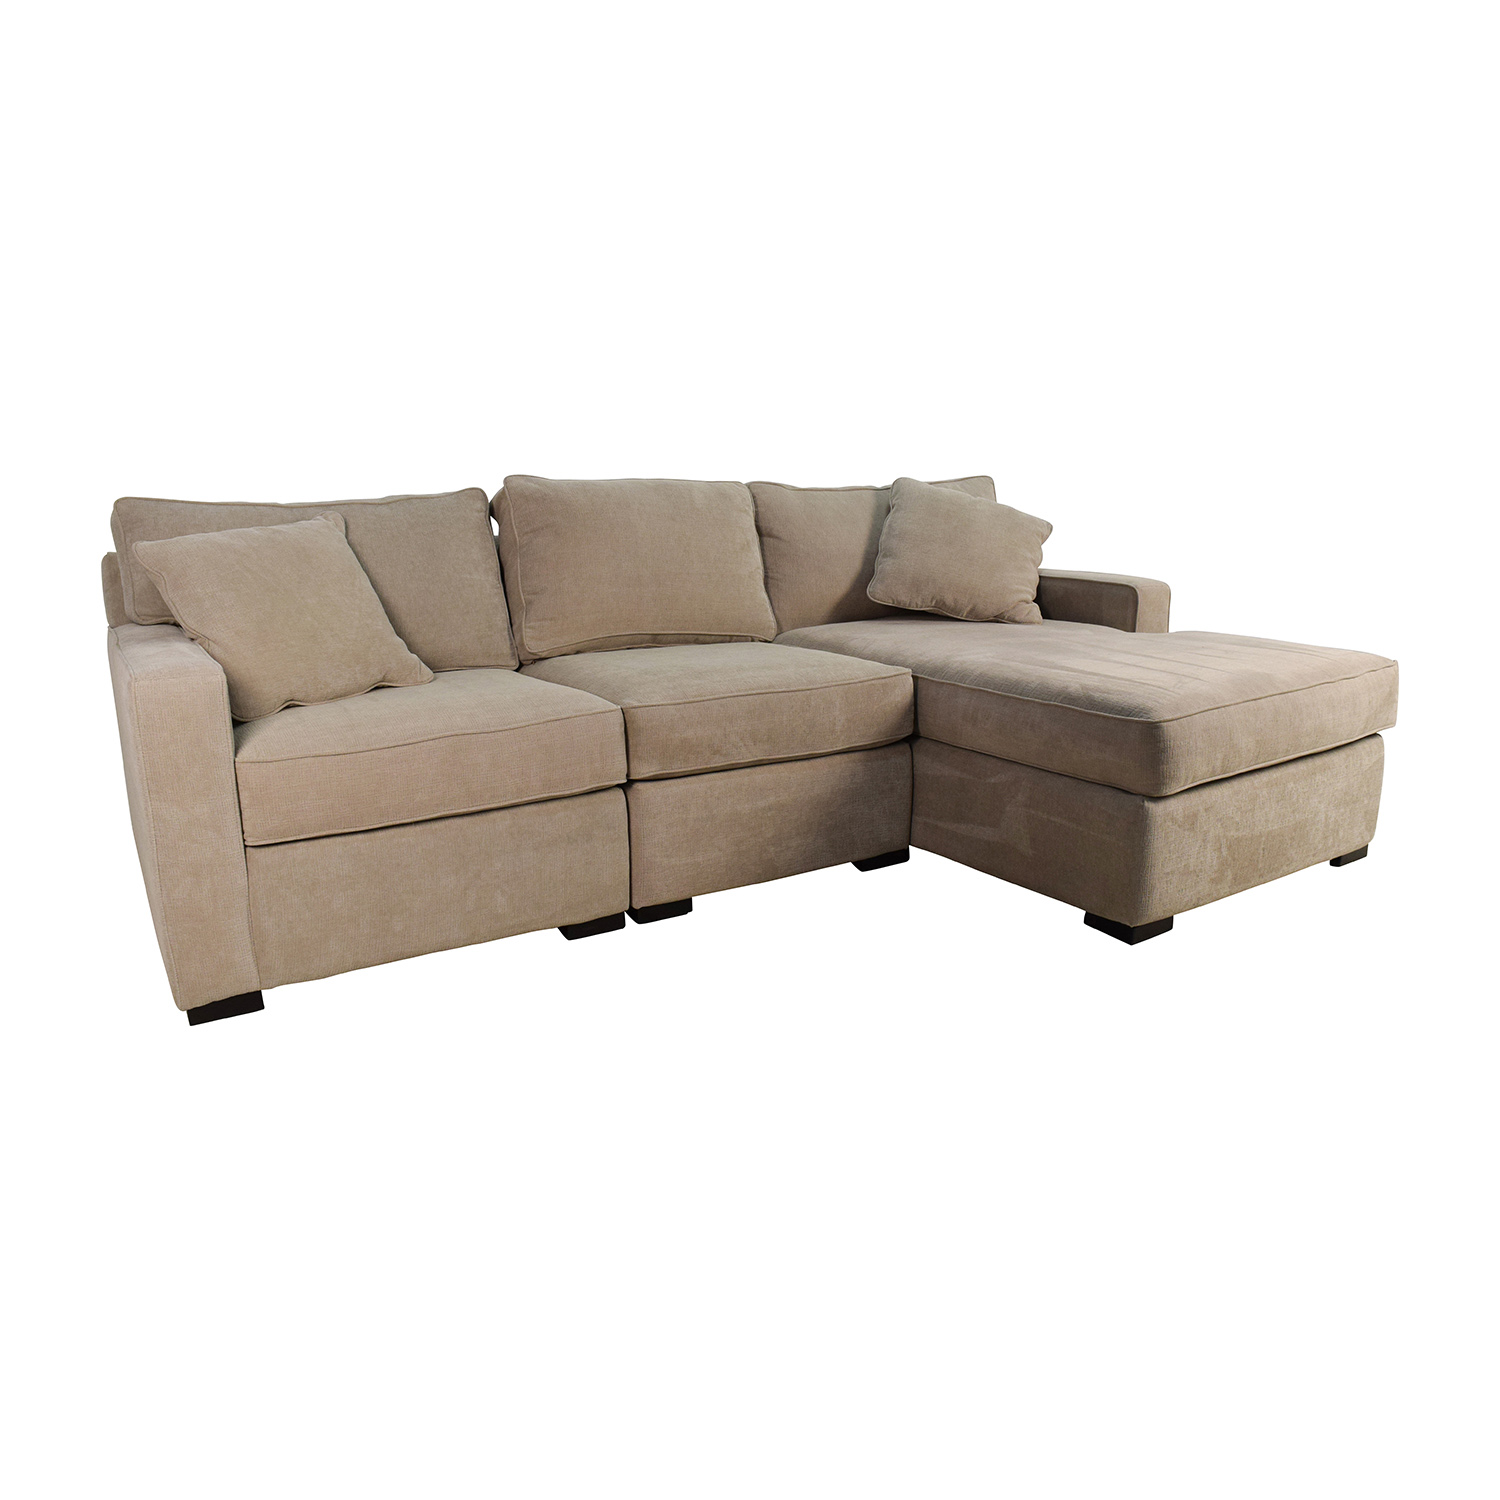 Macy's Radley 3-Piece Fabric Chaise Sectional